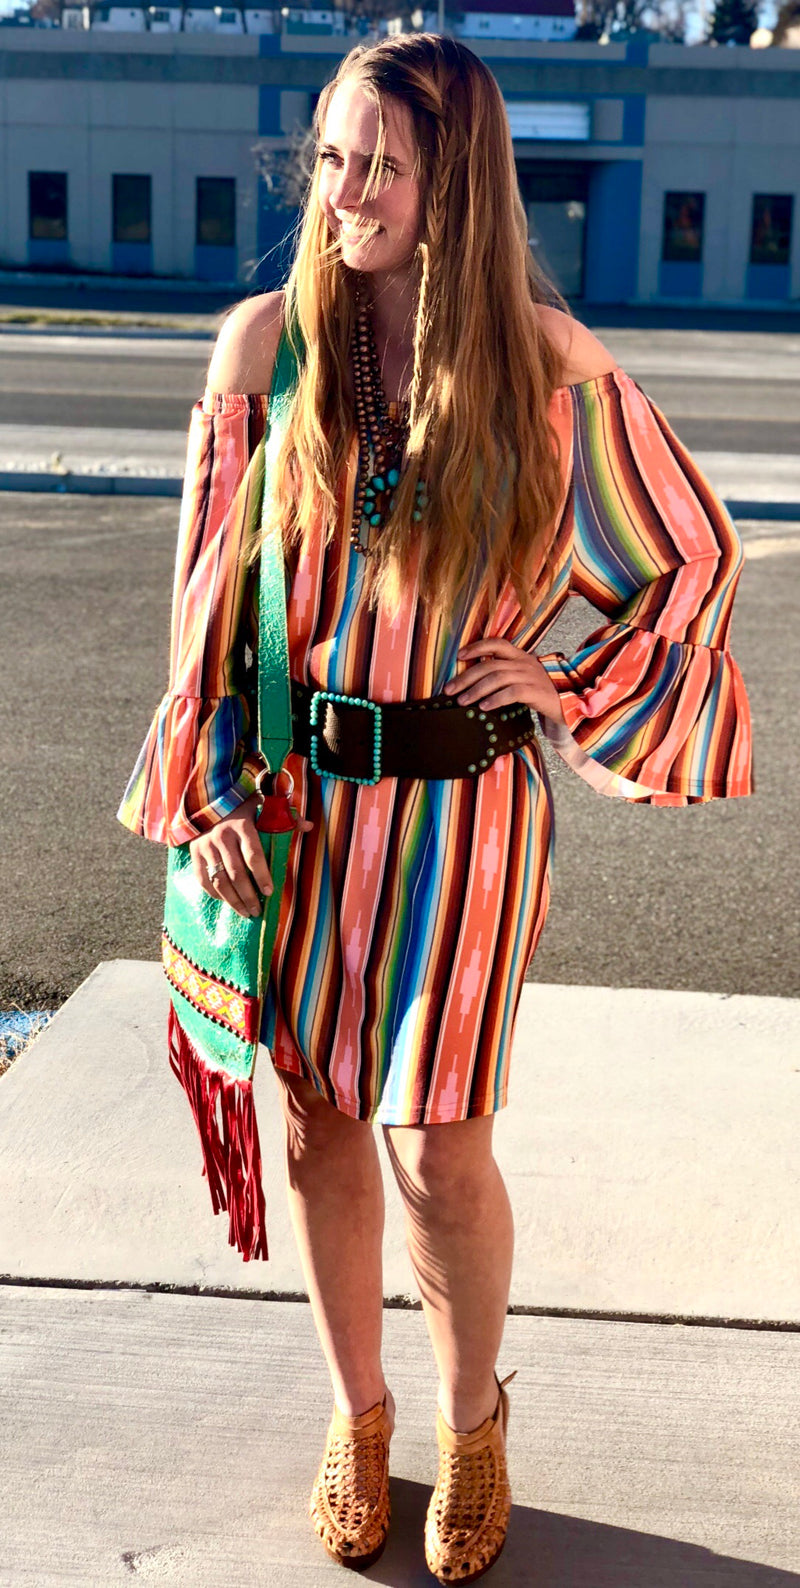 The Guadalajara Serape Tunic Dress